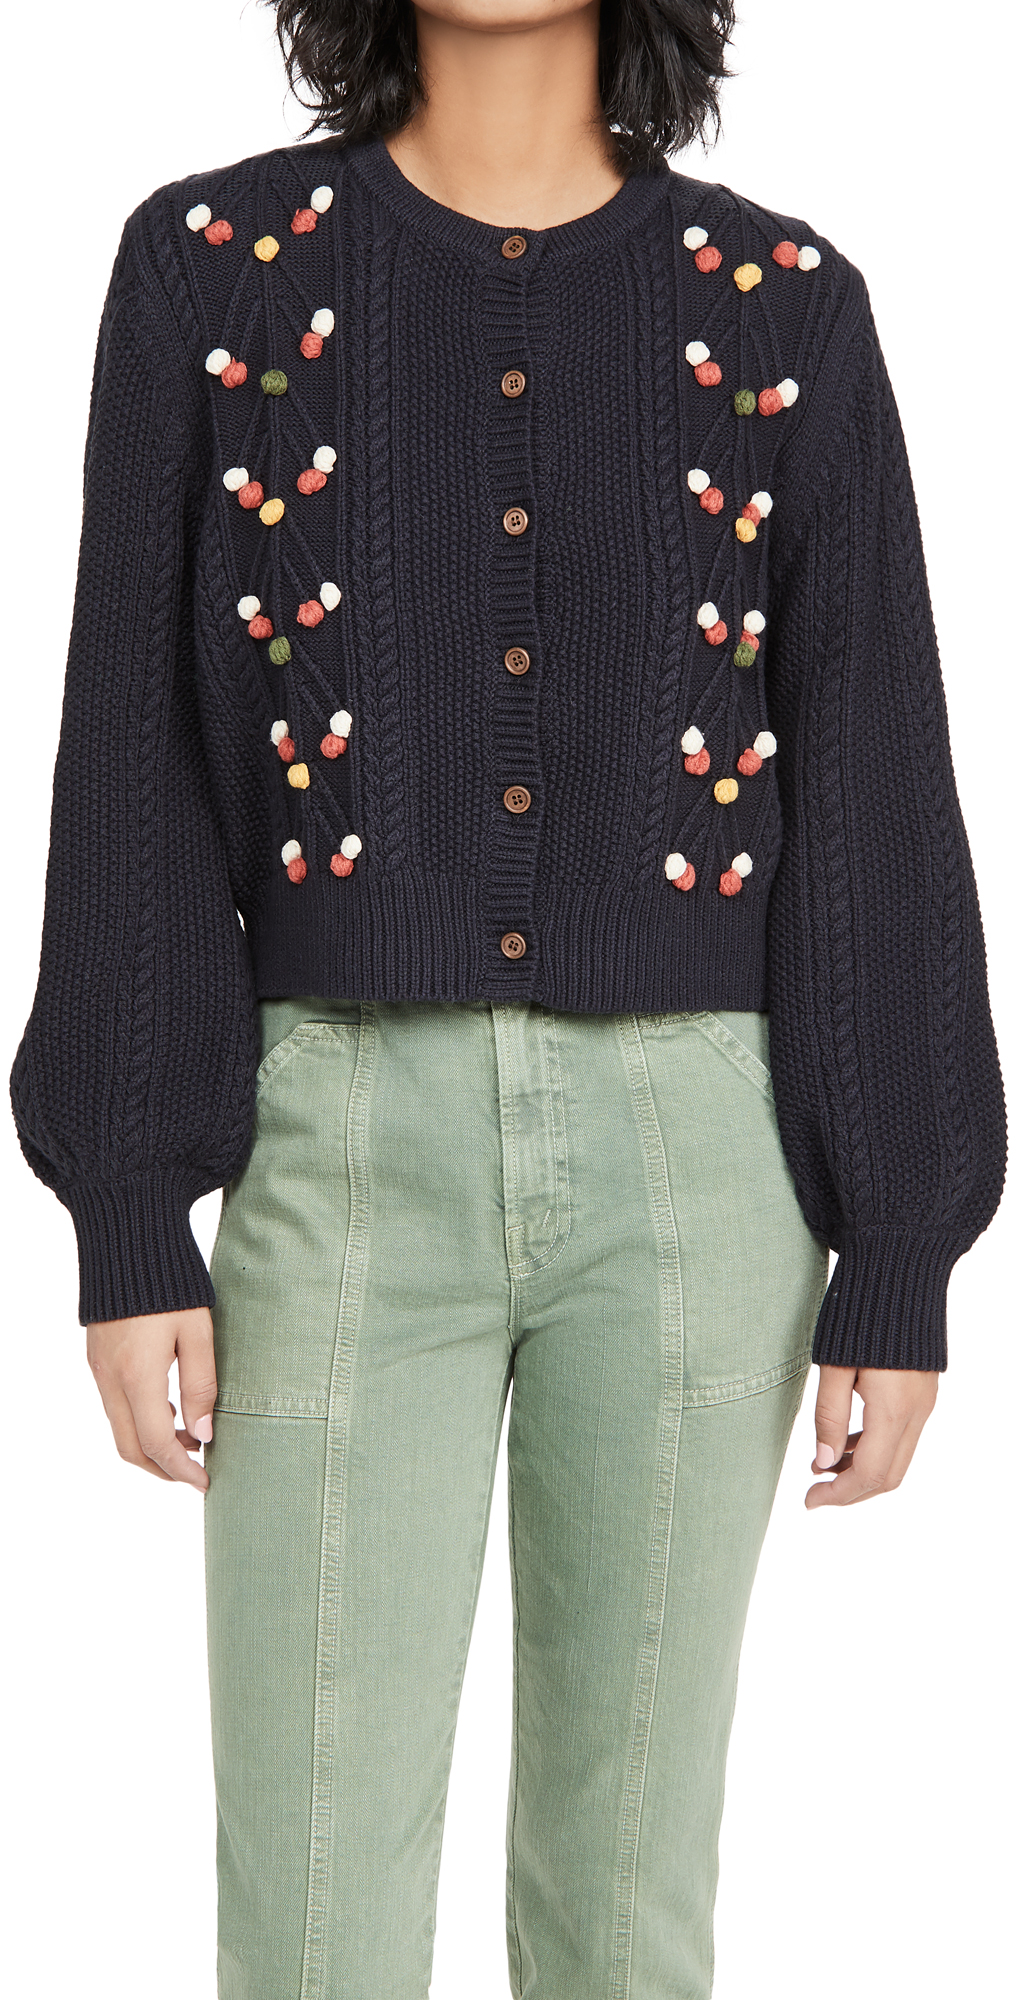 THE GREAT. The Frond Cardigan